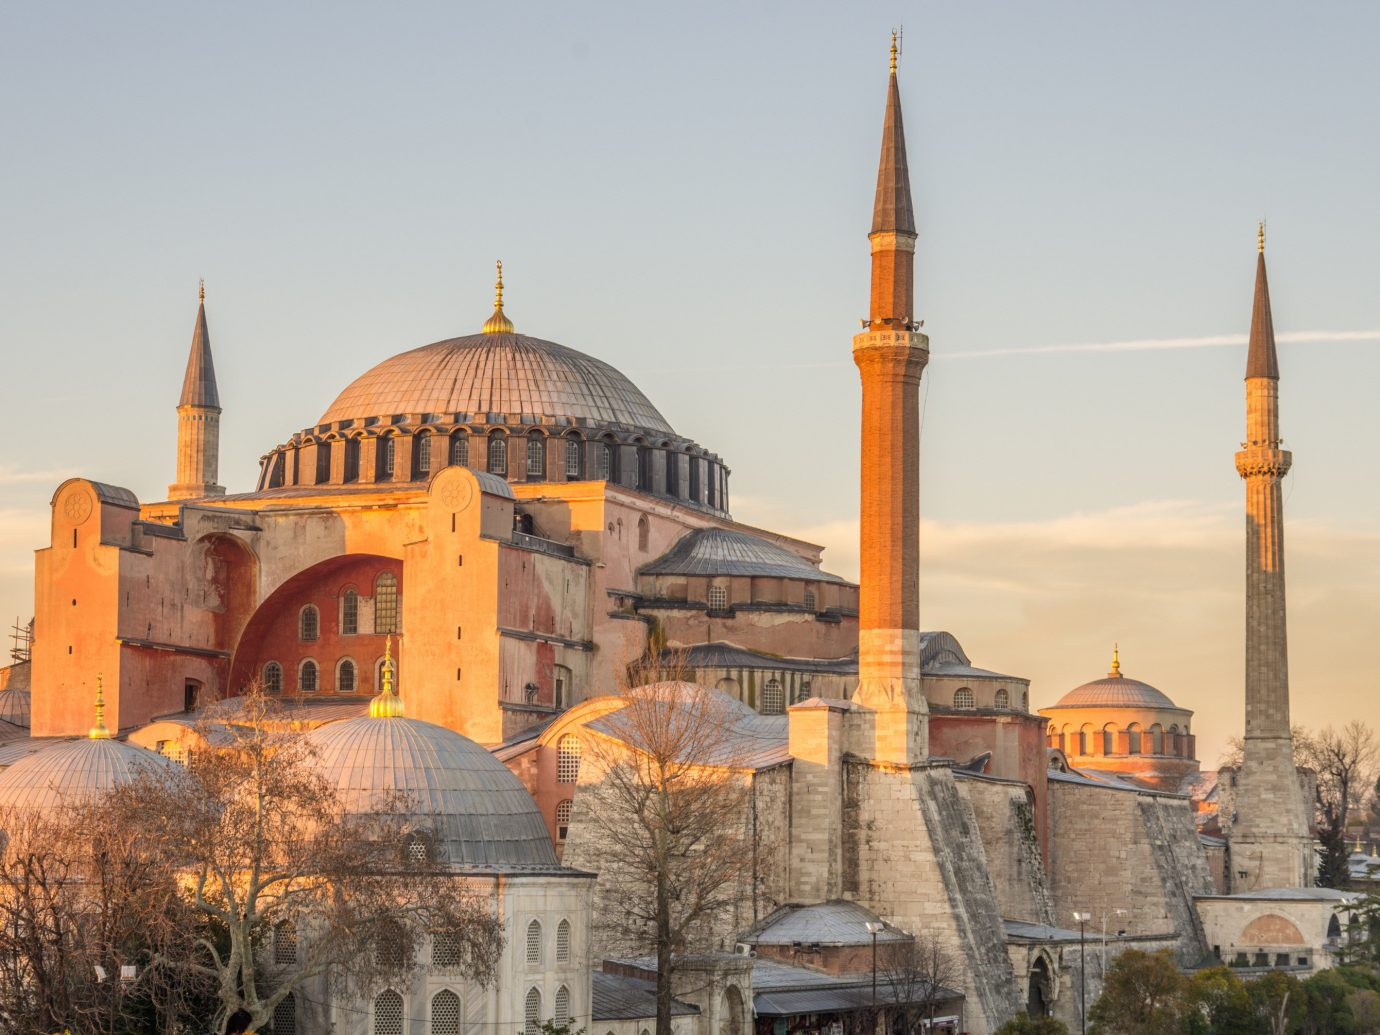 Trip Ideas sky outdoor building mosque historic site place of worship landmark byzantine architecture dome cathedral ancient history temple Church